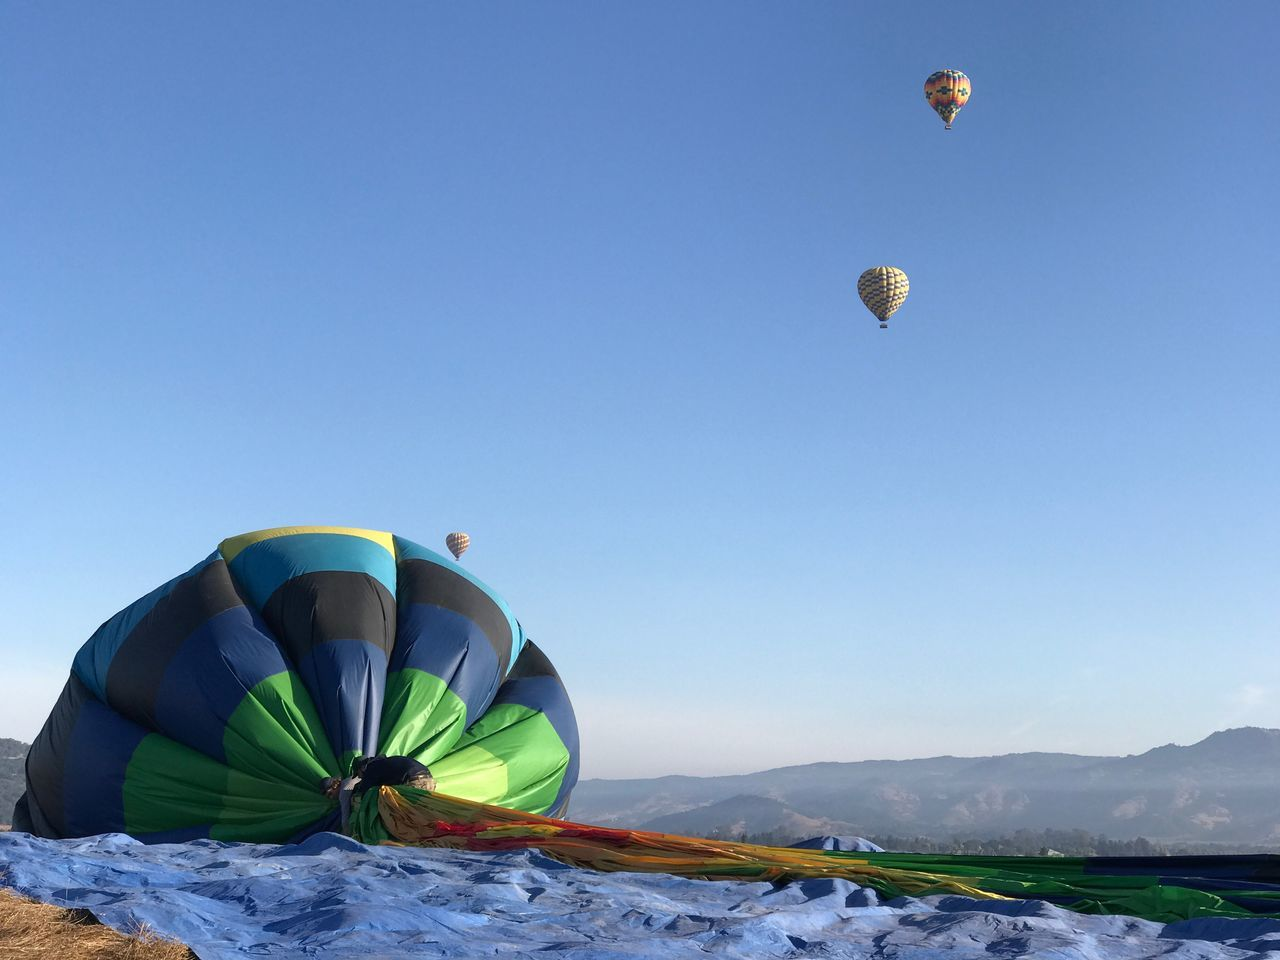 Clear Sky Mountain Transportation Hot Air Balloon Blue Tranquility Nature Flying Down Crash Fall Fail Deflated Air Scenics Mid-air Beauty In Nature Outdoors Geology Mountain Peak Mountain Range Physical Geography Green Color Extreme Terrain